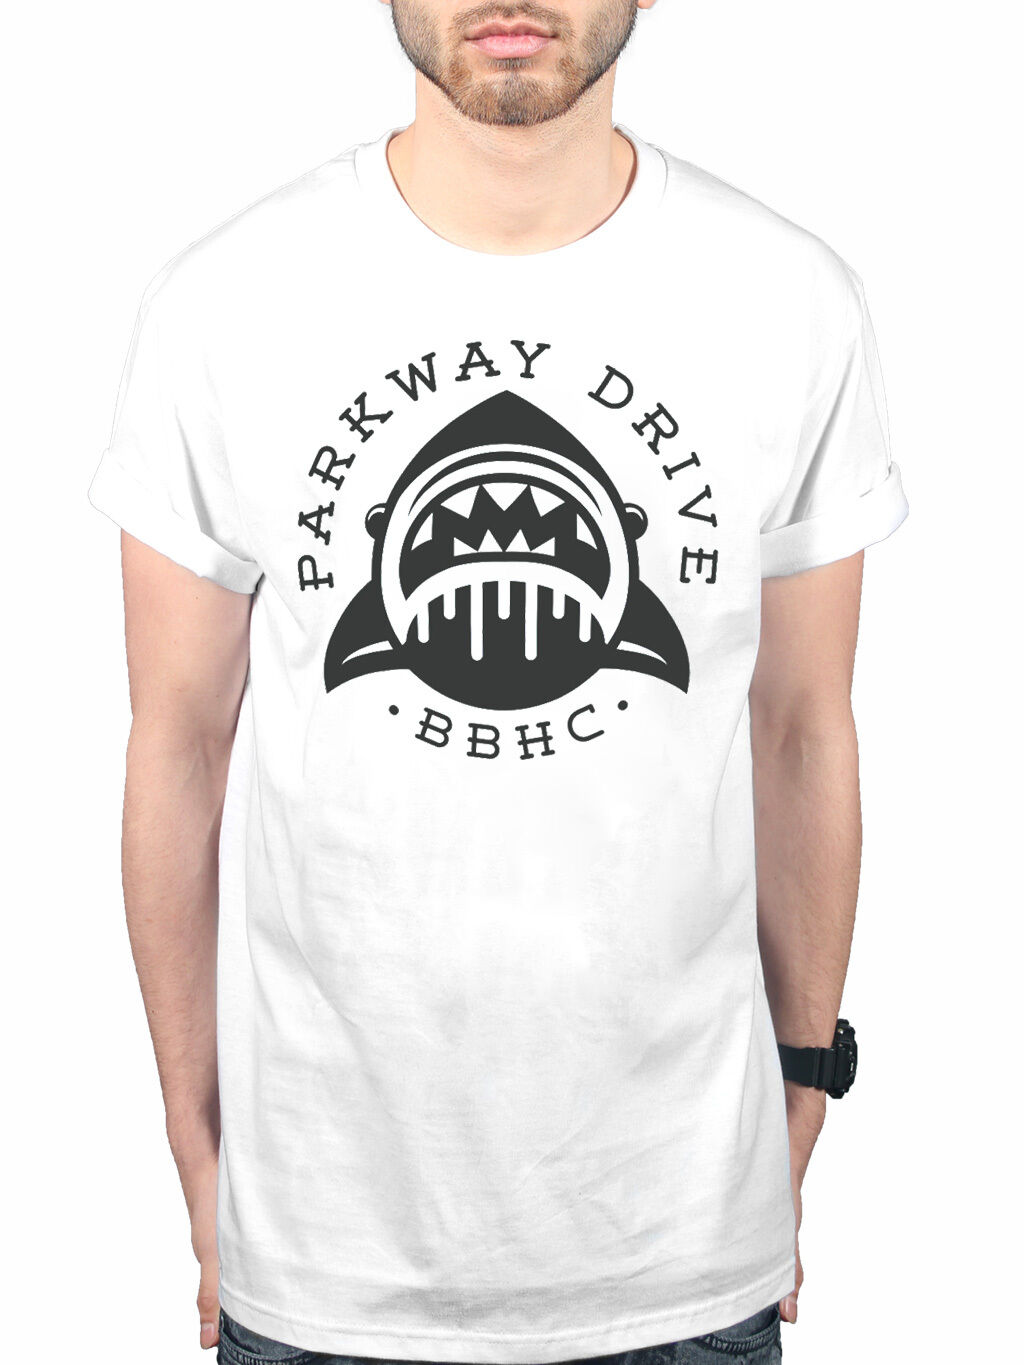 Official Parkway Drive Shark BBHC New Unisex T-shirt Metalcore Band Merch Printed T Shirt Short Sleeve Men image